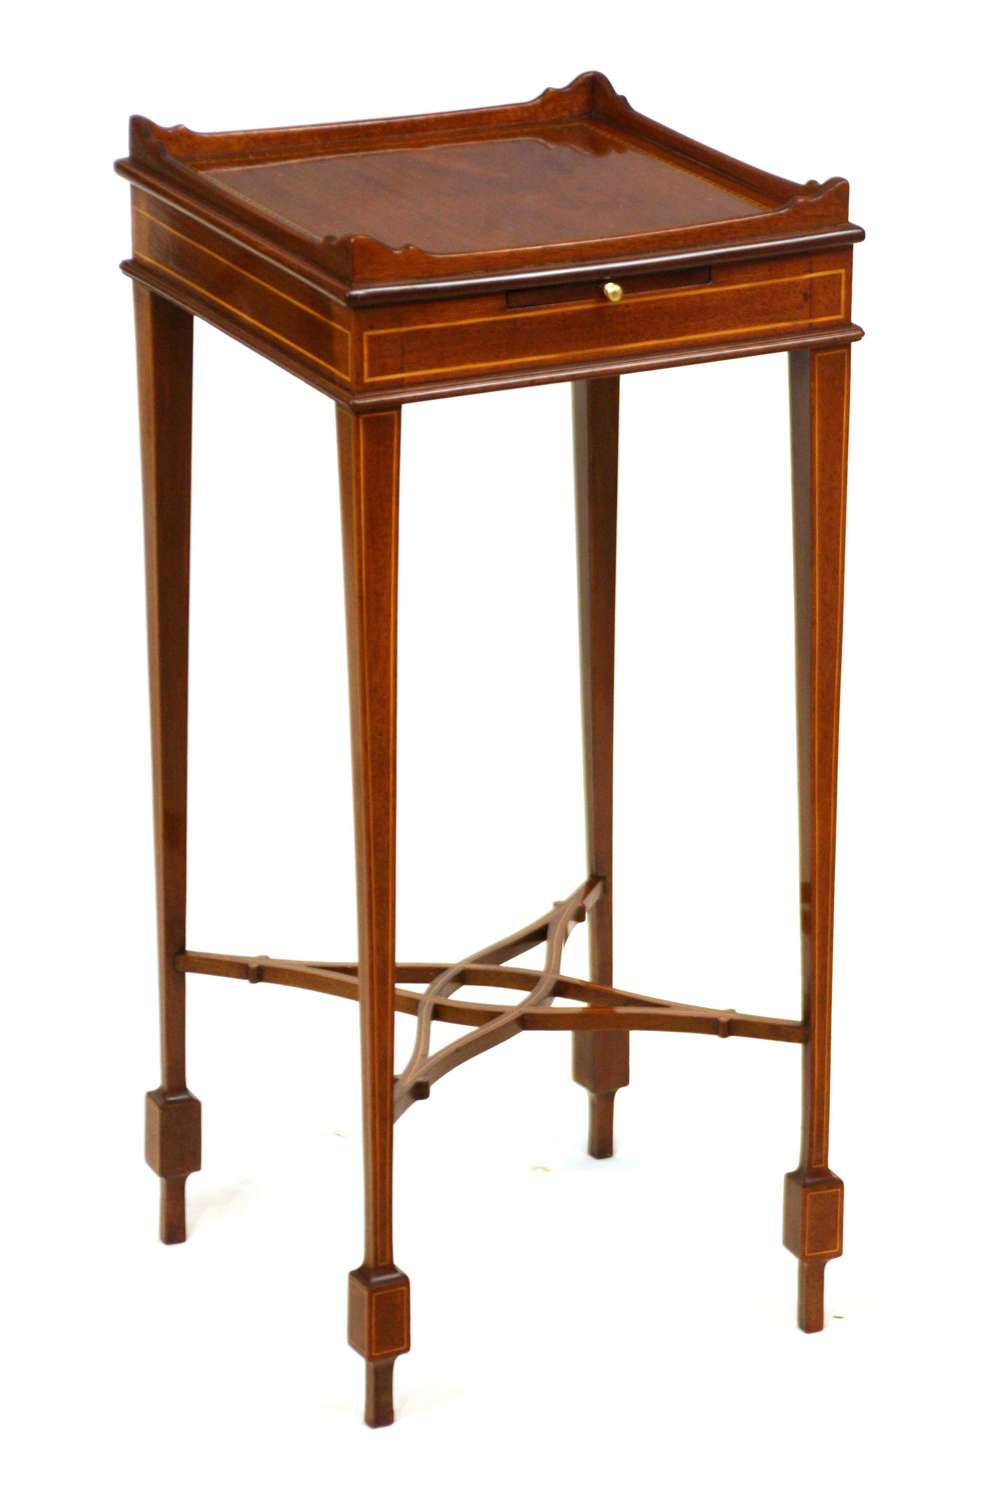 A Beautifully Inlaid Mahogany Victorian Square Kettle Stand